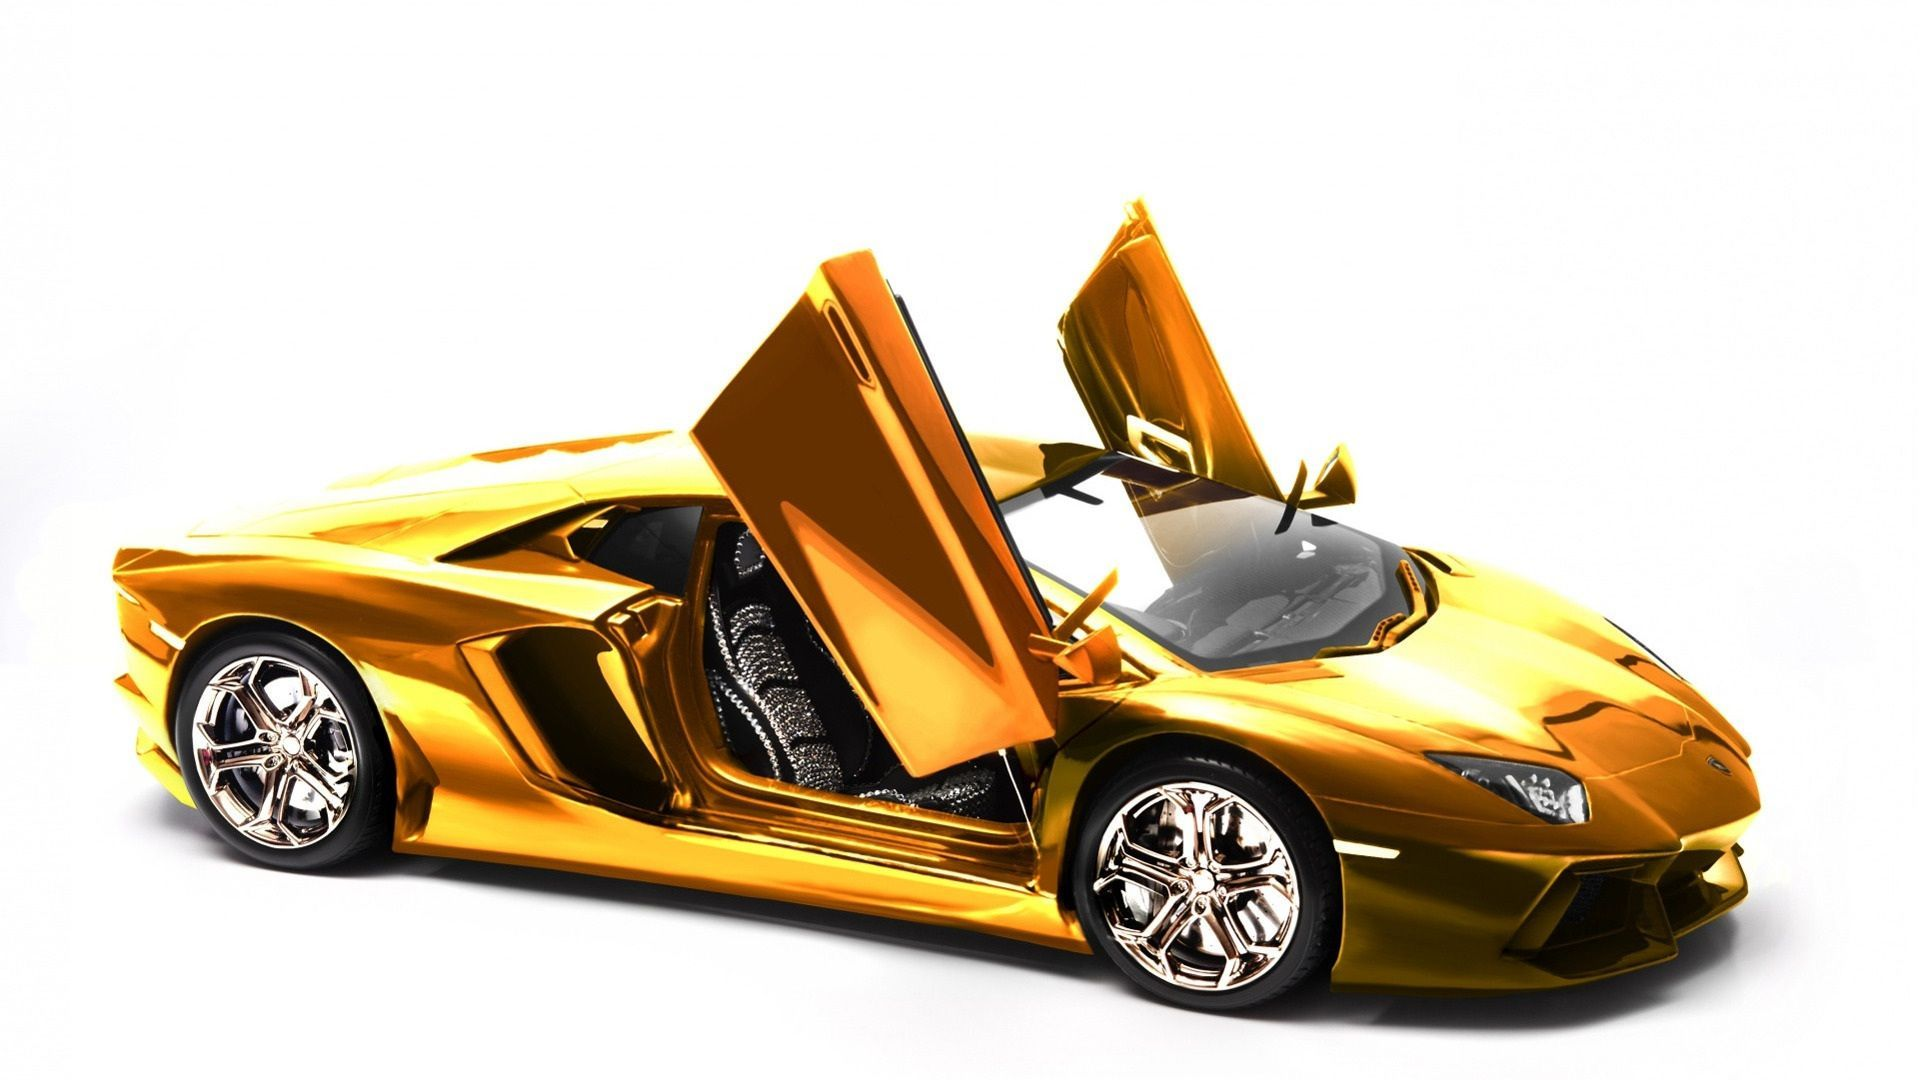 Golden Cars Wallpapers Top Free Golden Cars Backgrounds